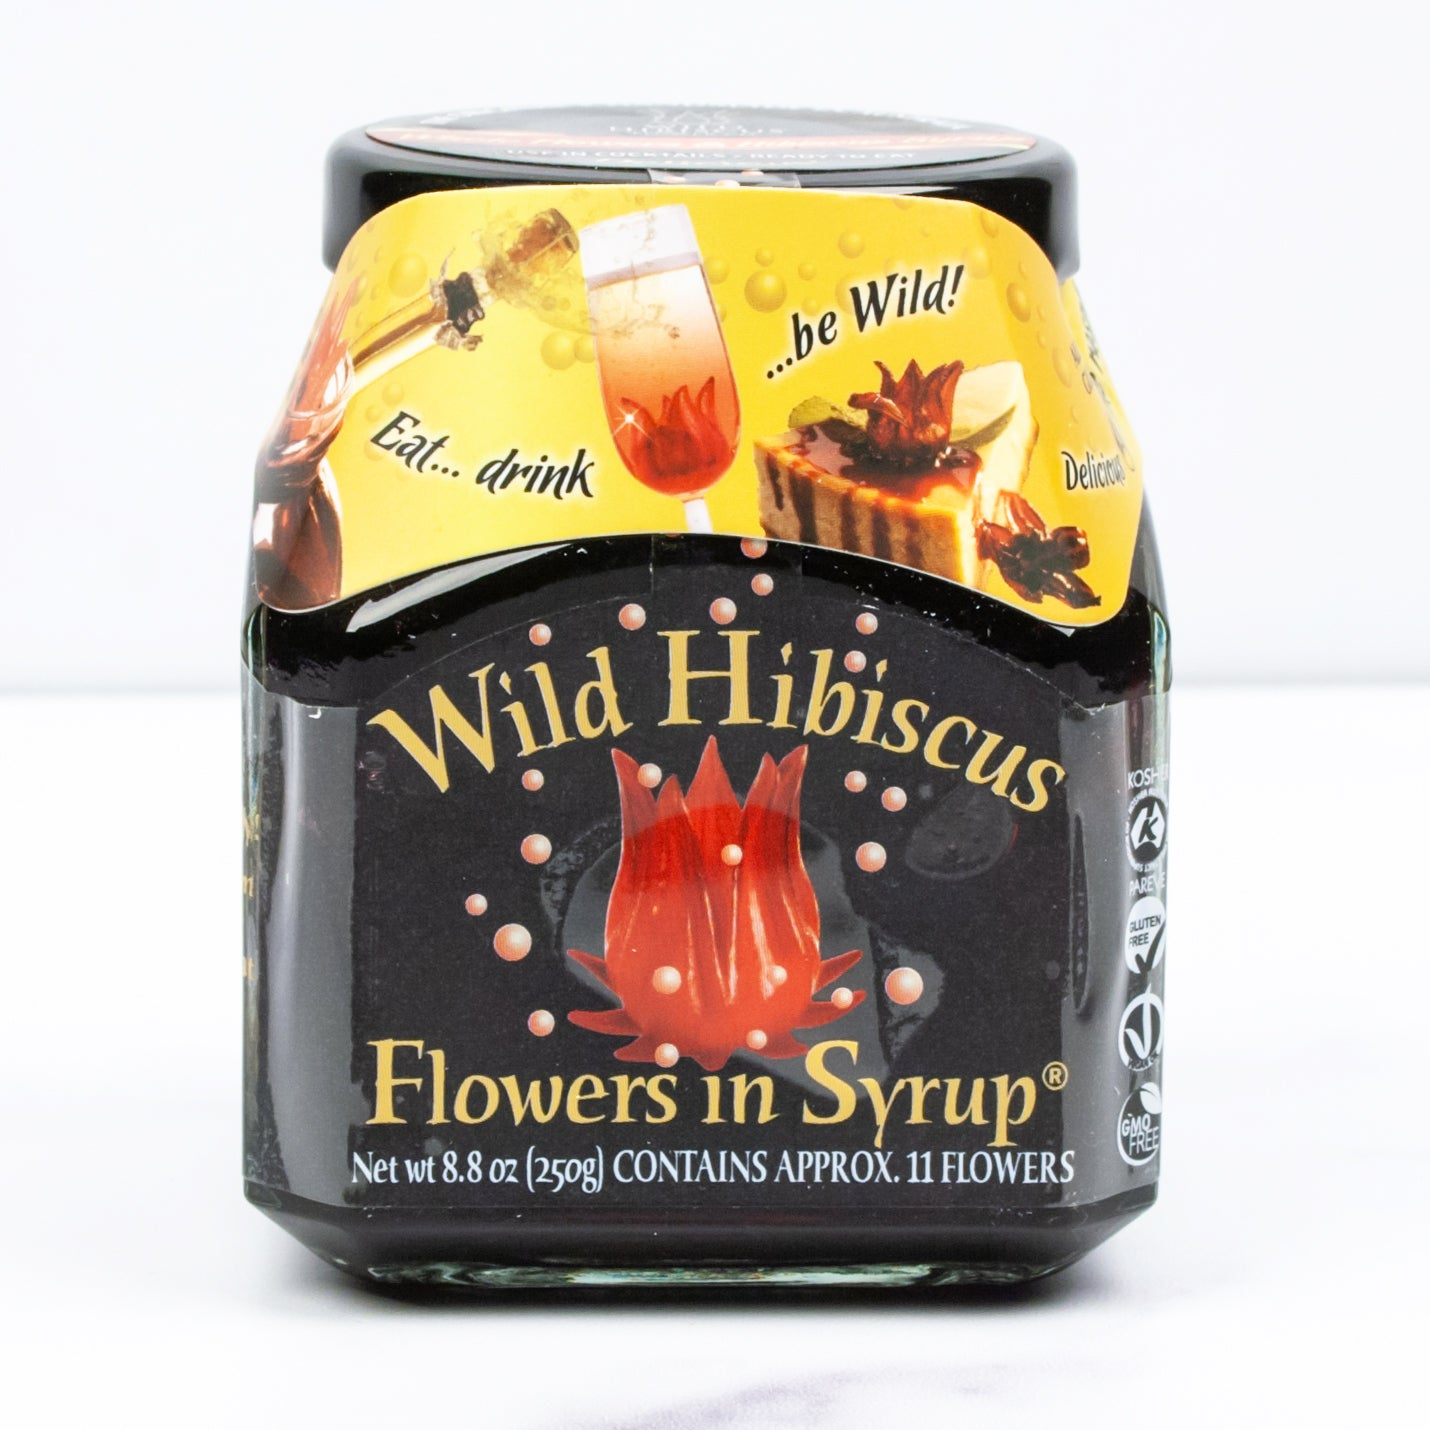 Flowers in Syrup